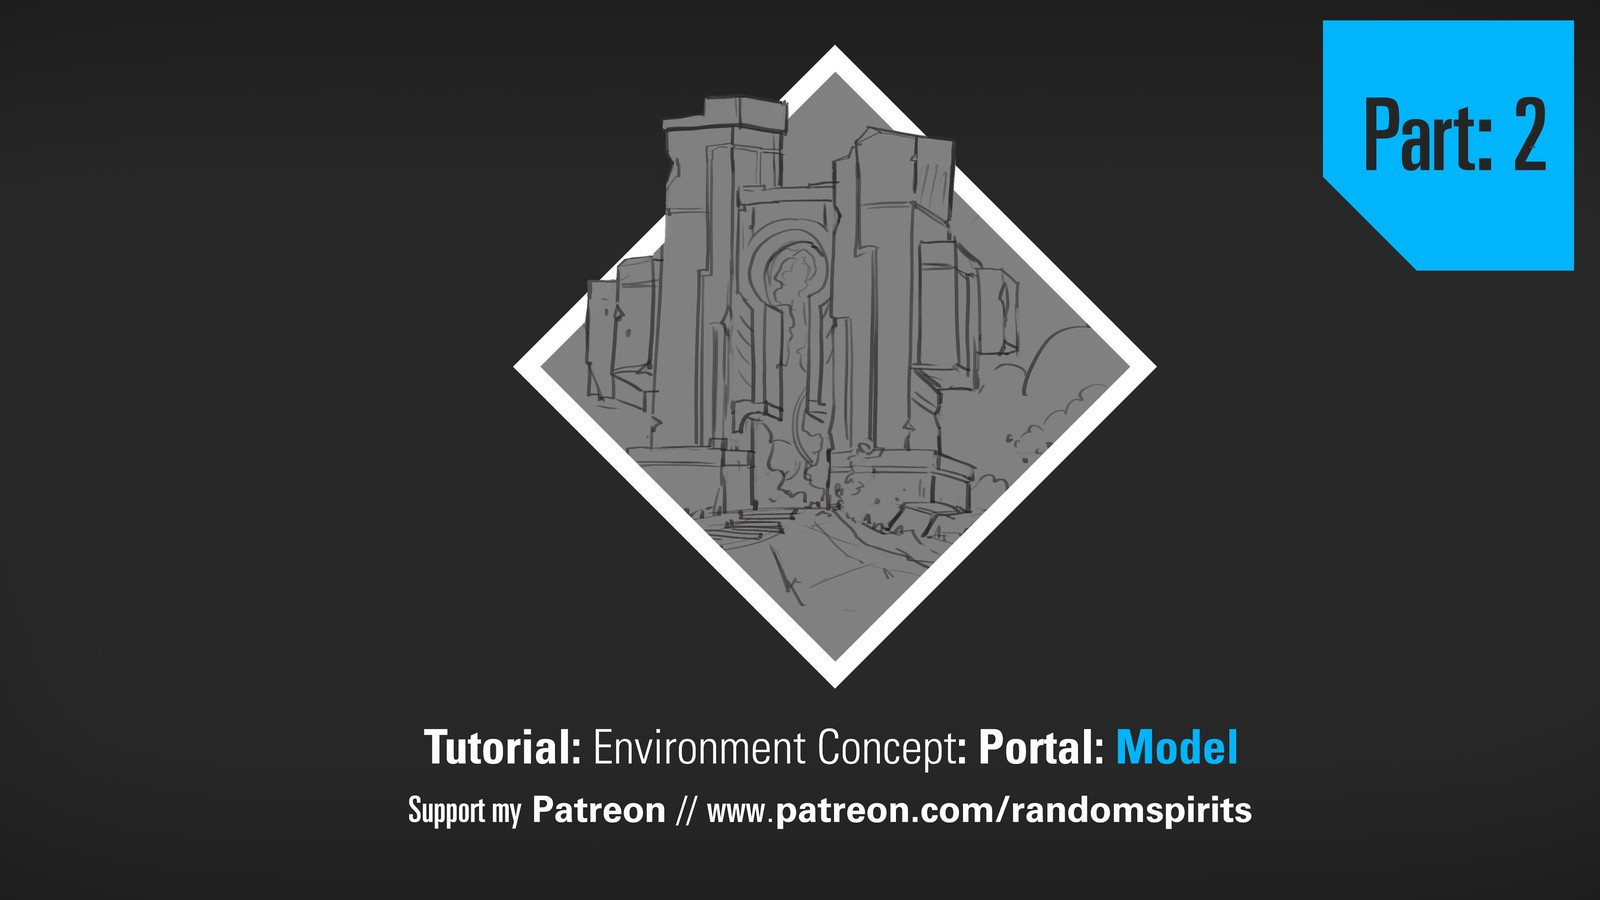 Tutorial: Environment Concept: Modeling - Portal - Part 2